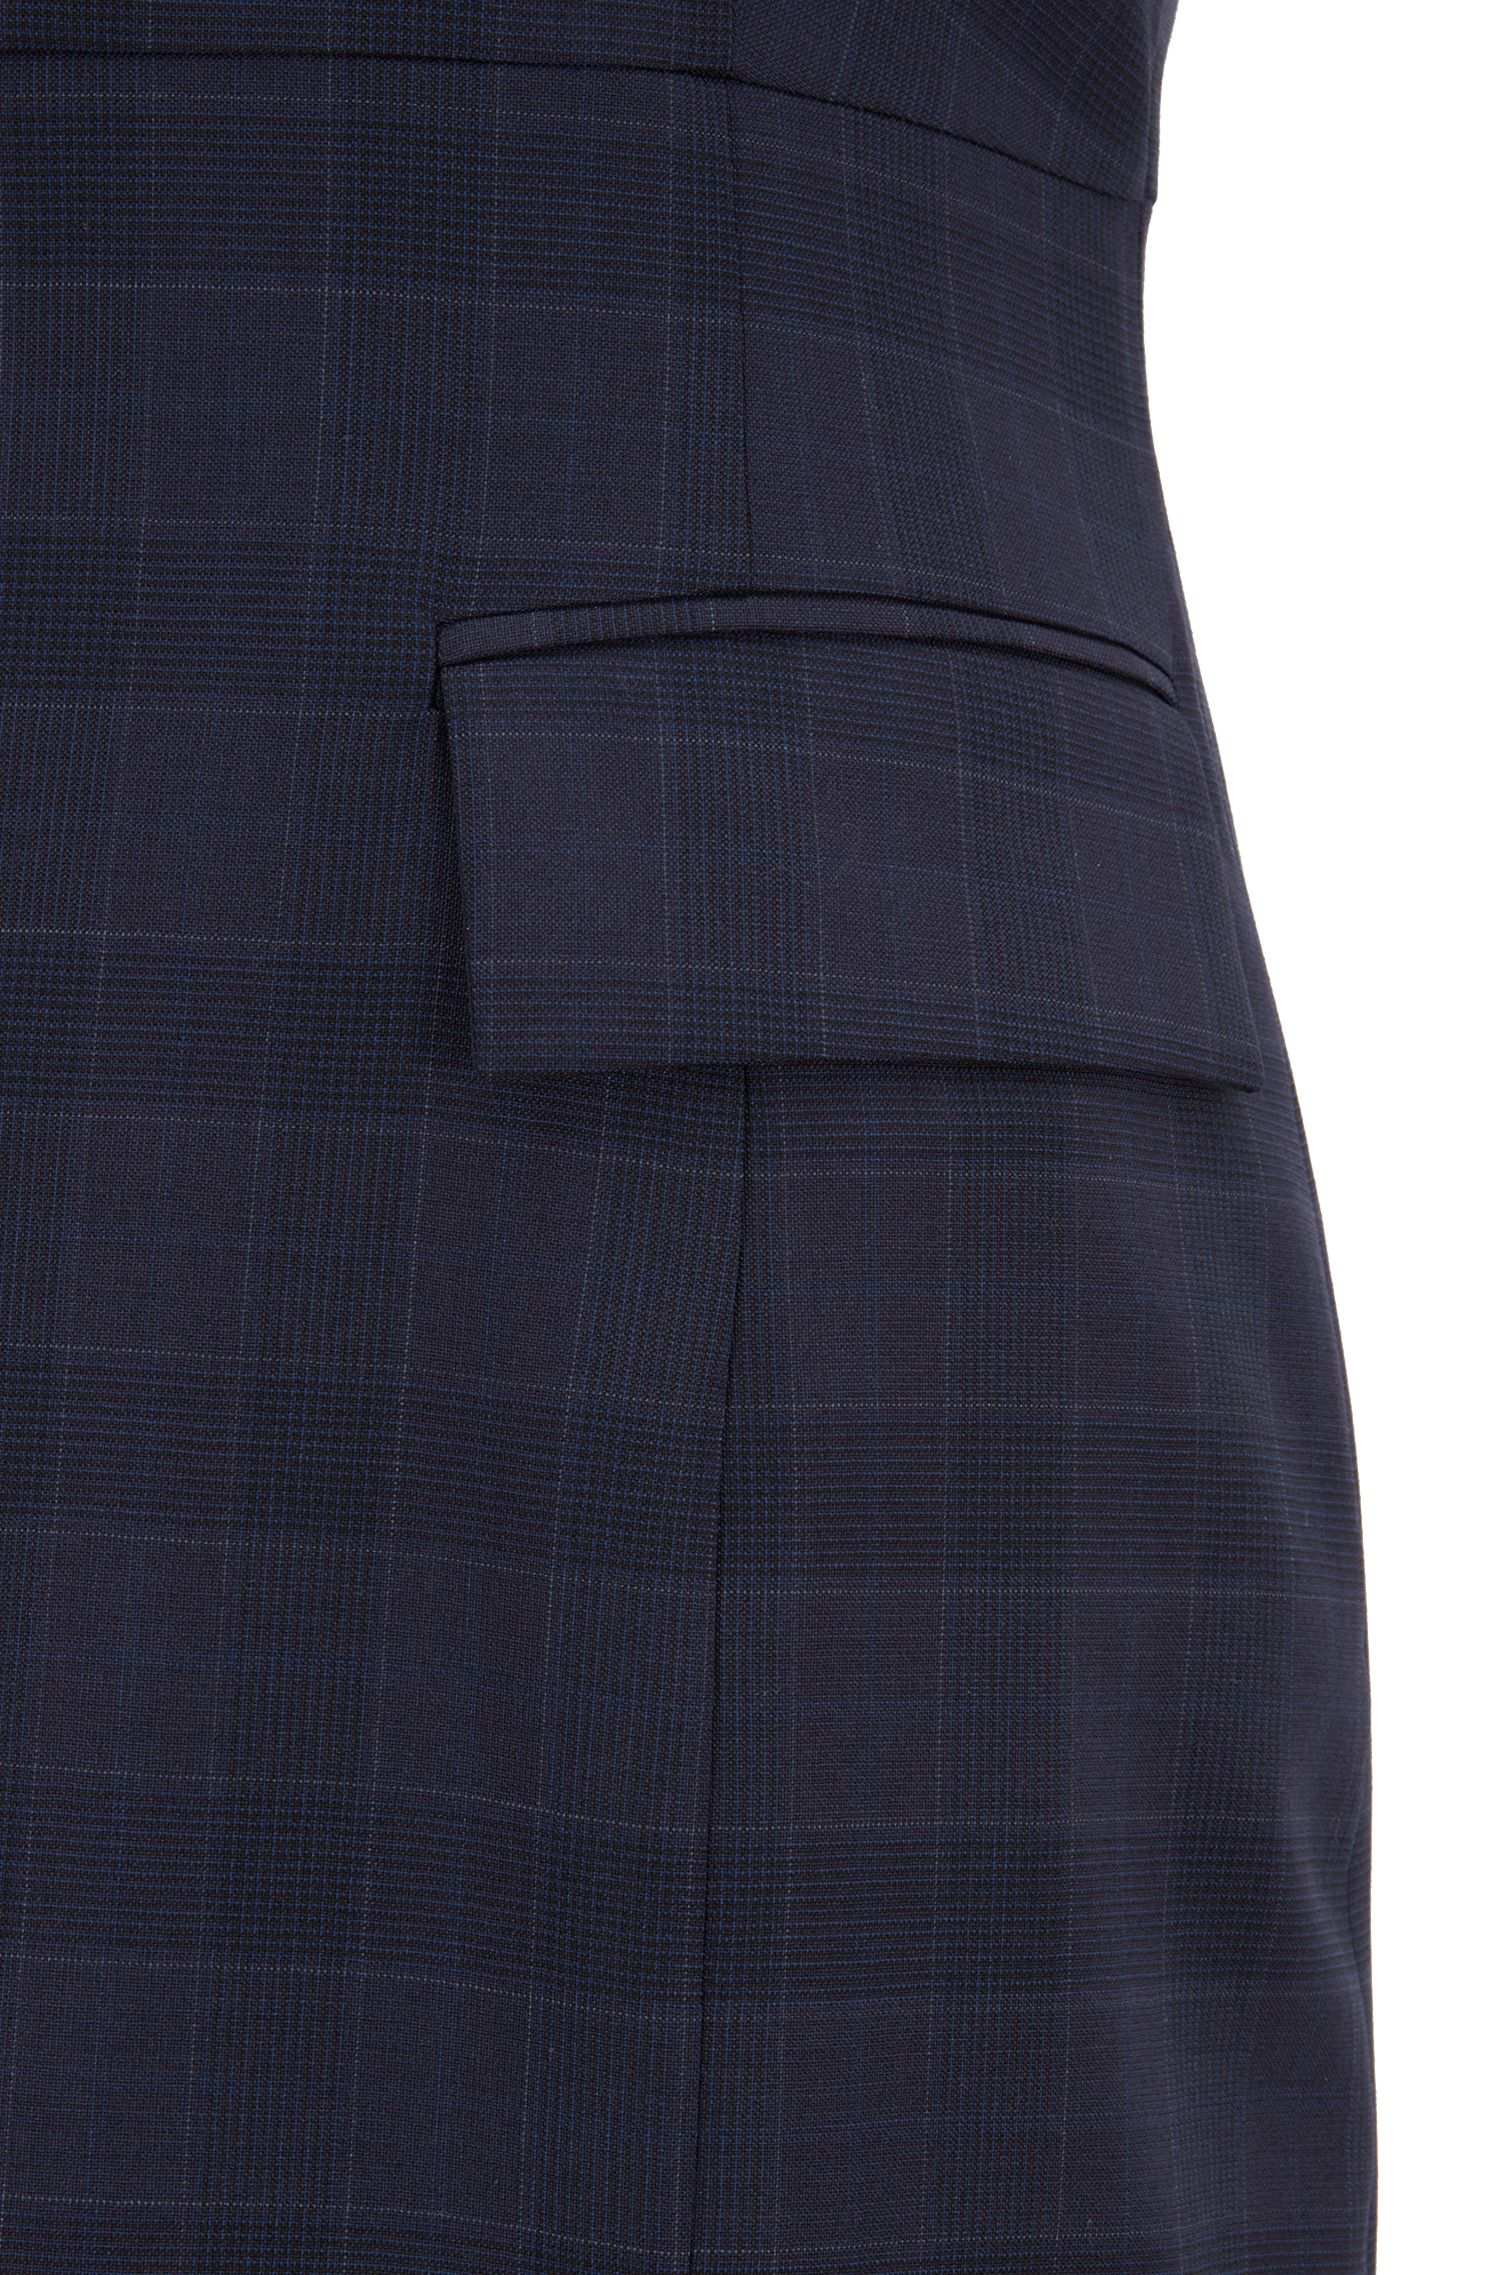 Sleeveless business dress in checked virgin wool, Patterned